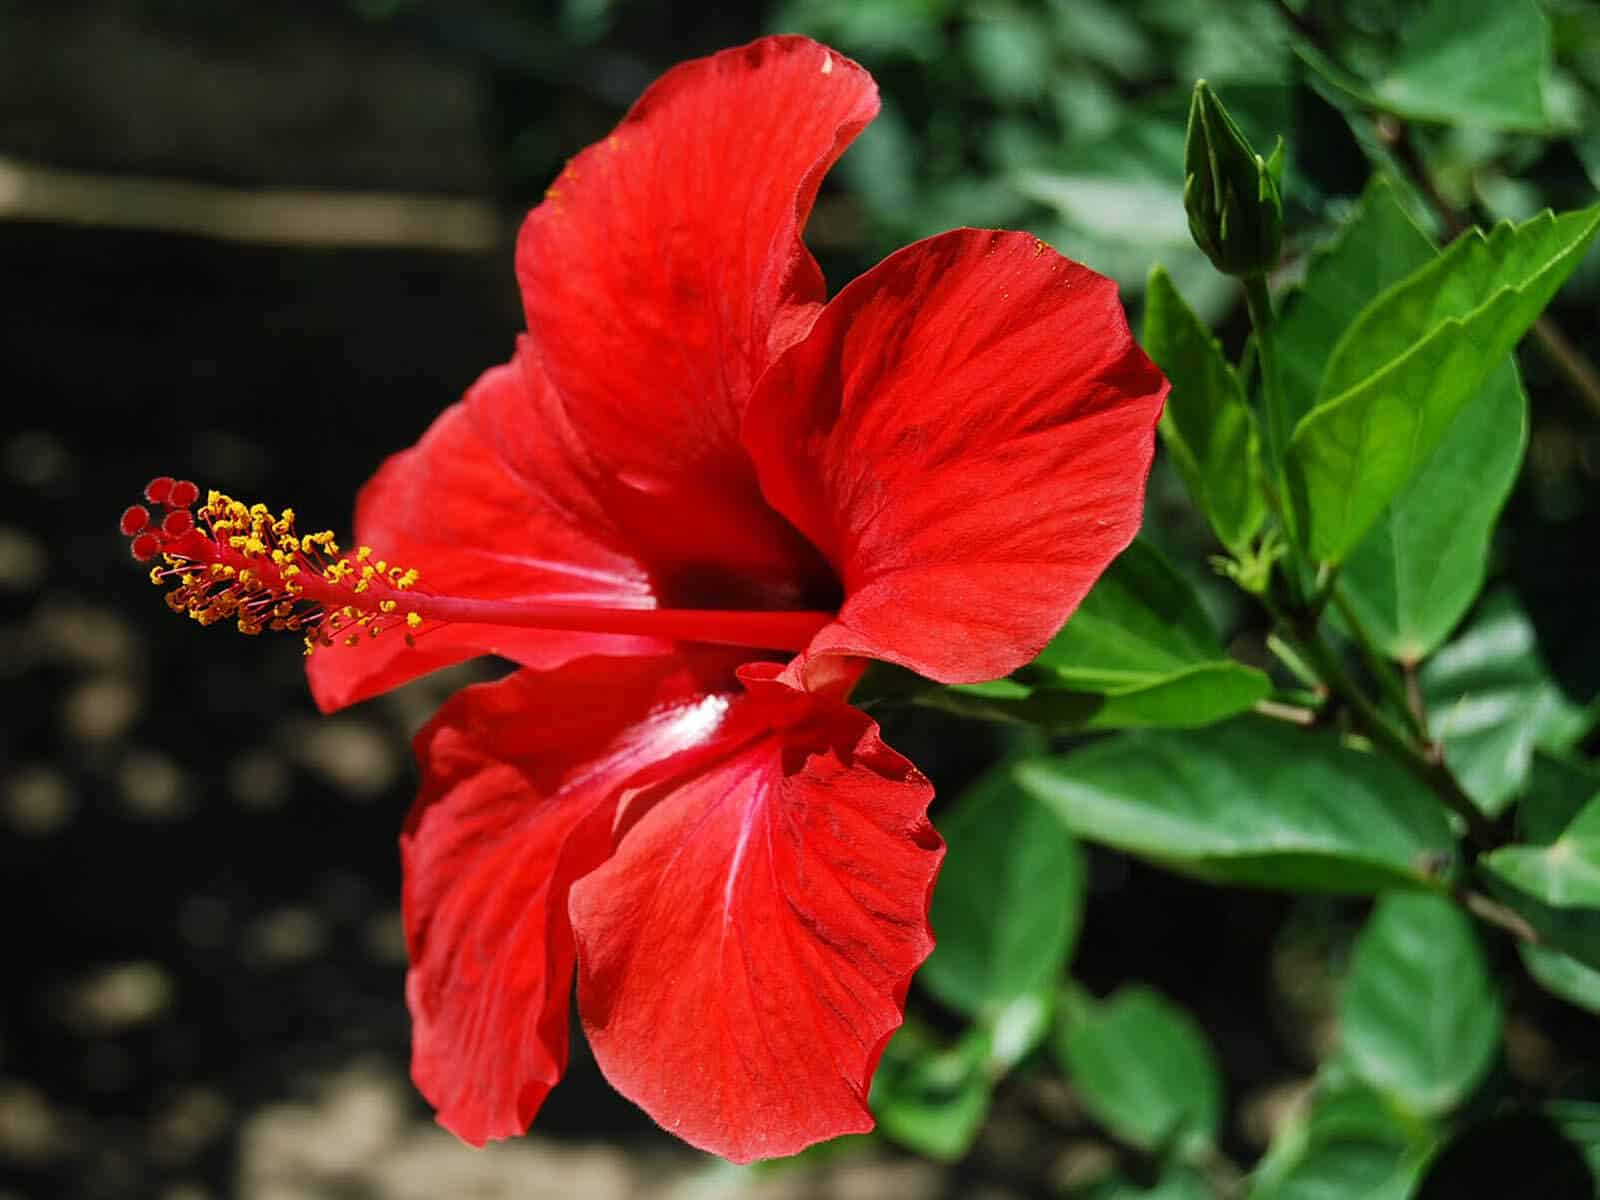 Hibiscus Flower Benefits For Hair Hibiscus For Health And Beauty - Gofooddy